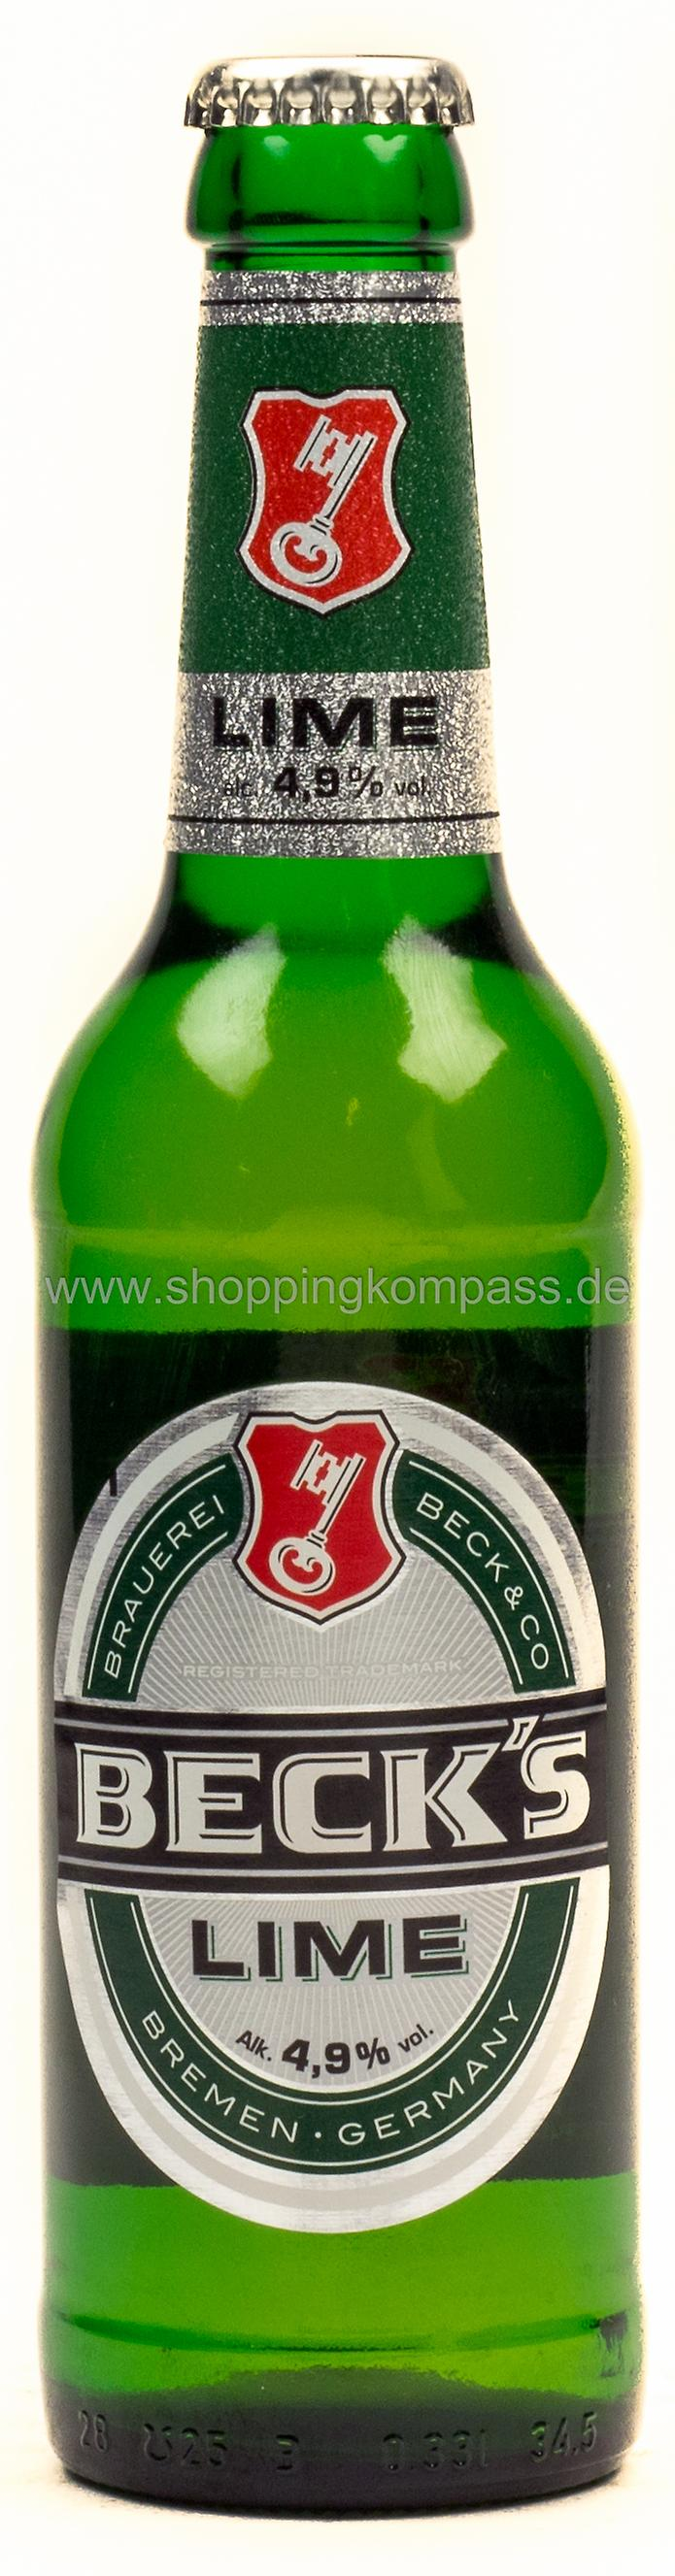 Becks Green Lime 0,33 l Glas Mehrweg